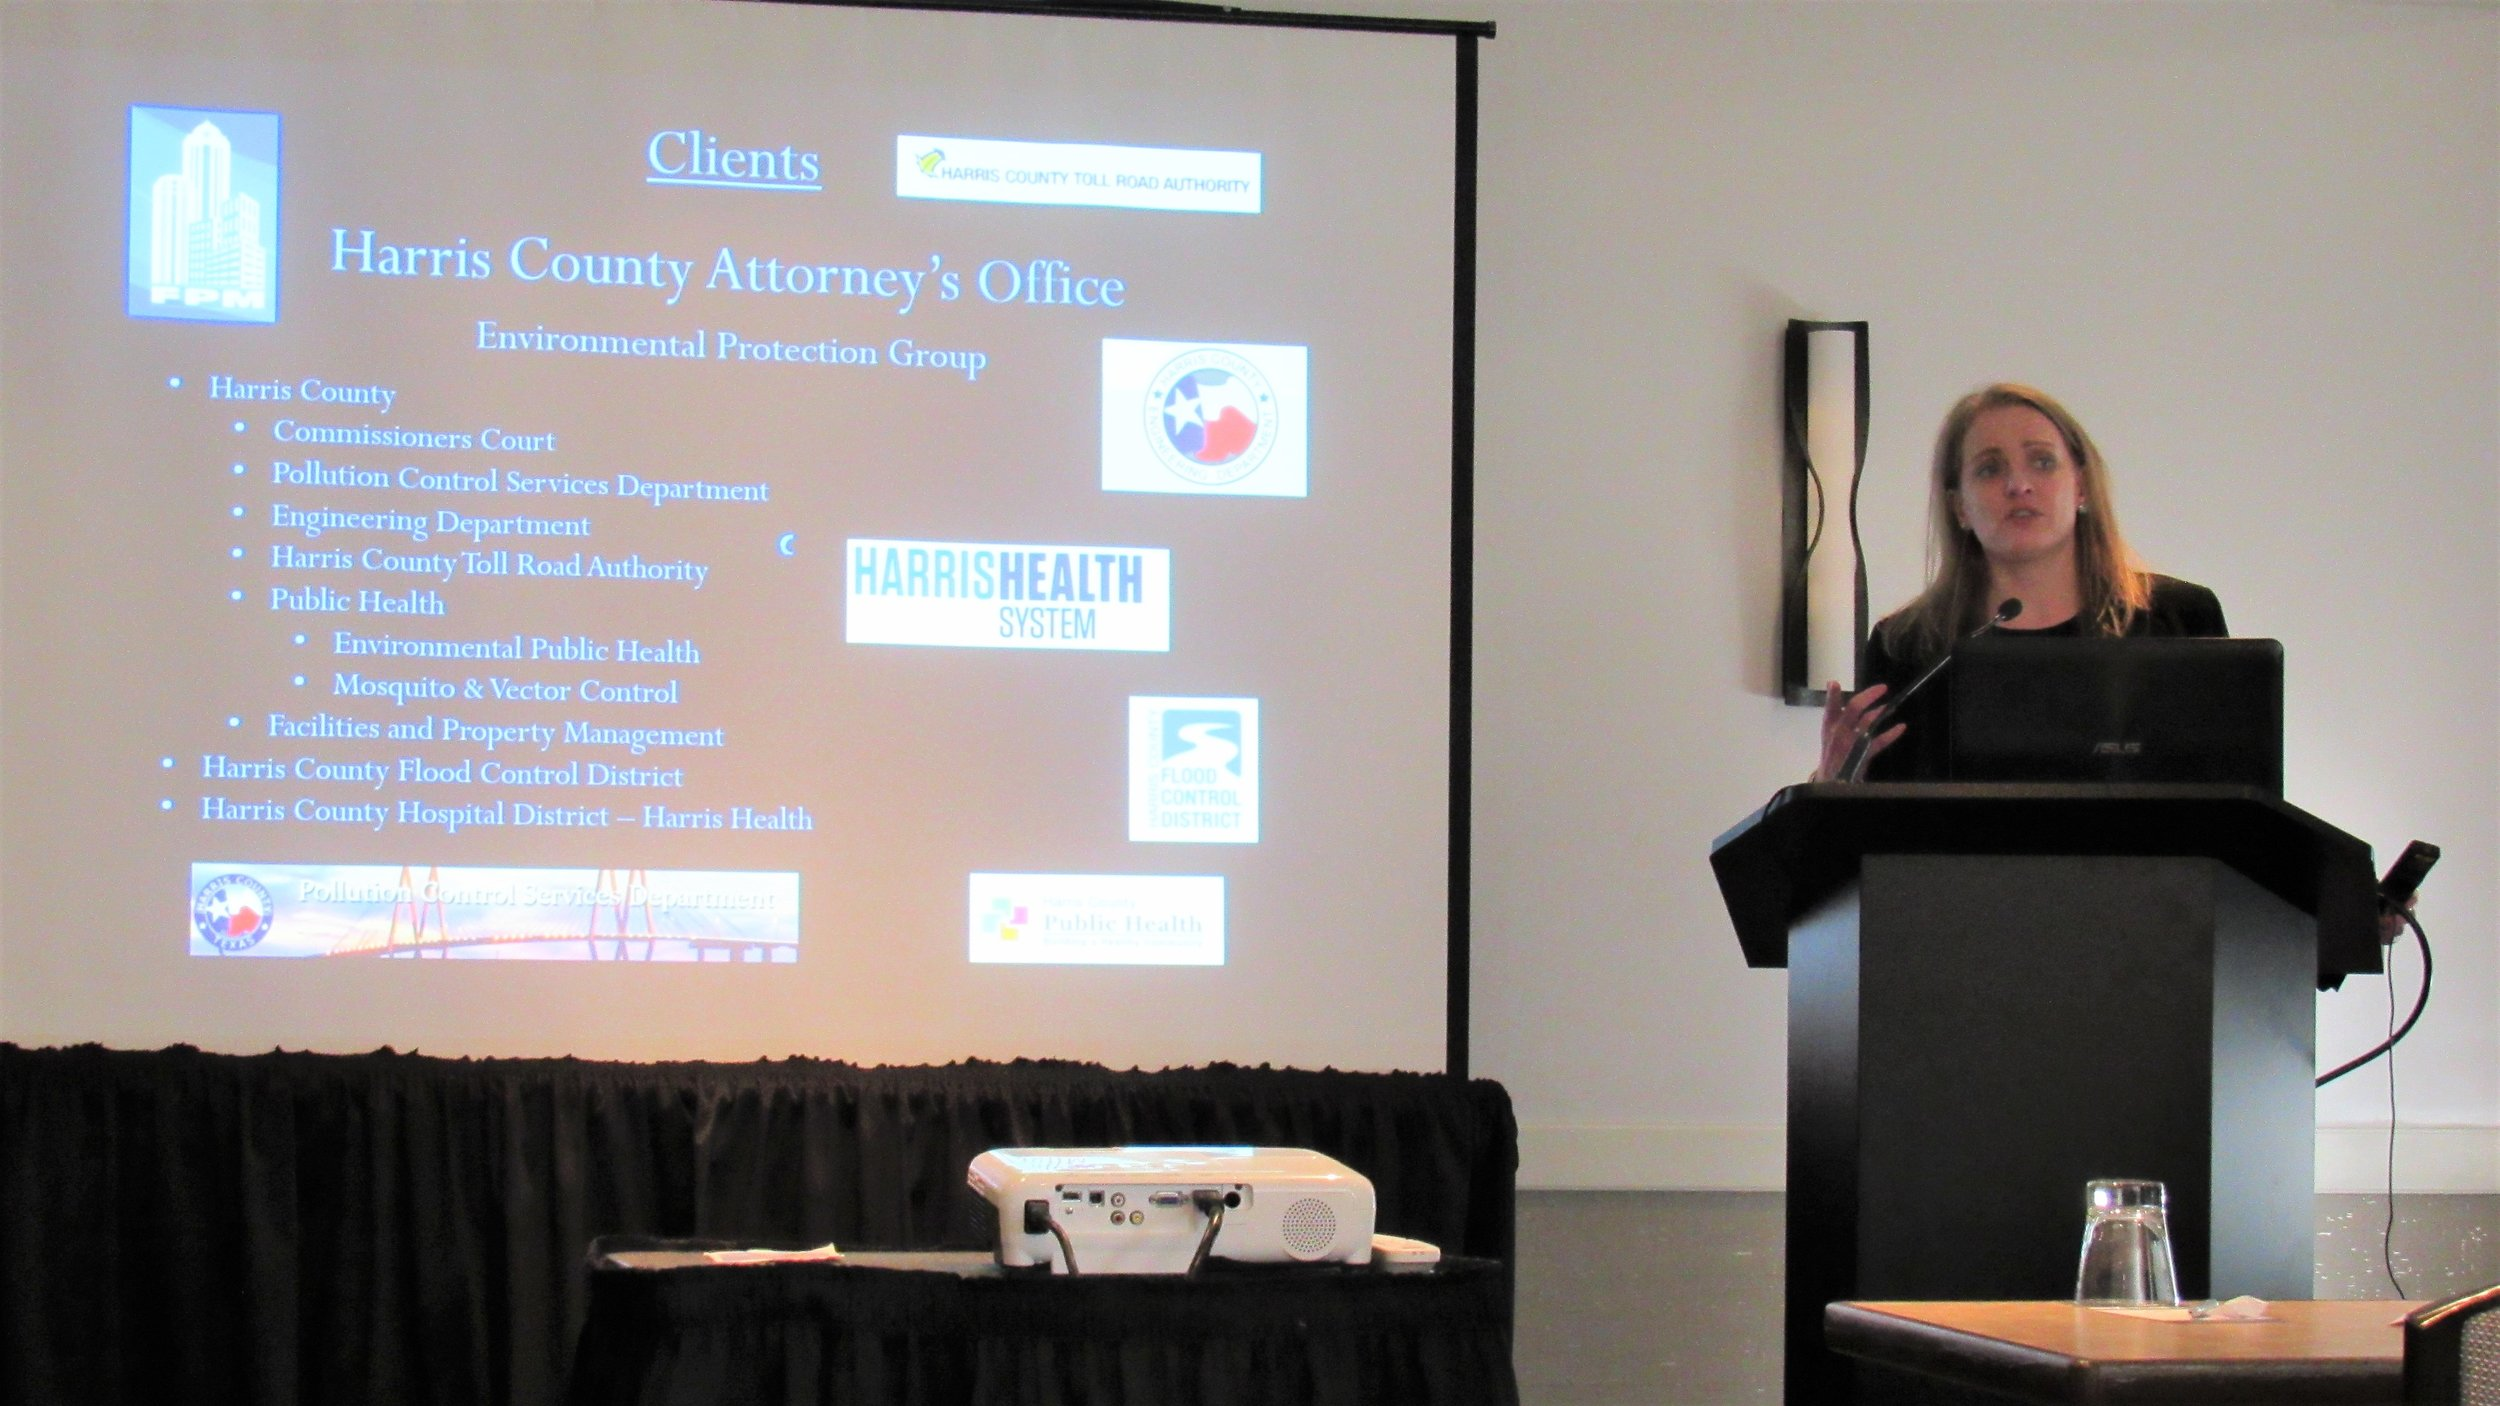 Harris County Attorney's Office Environmental Protection Group Managing Attorney Sarah Utley delivered a presentation at the Third Annual Public Interest Environmental Law conference on Friday Sept. 6, at the Magnolia Hotel in downtown Houston.